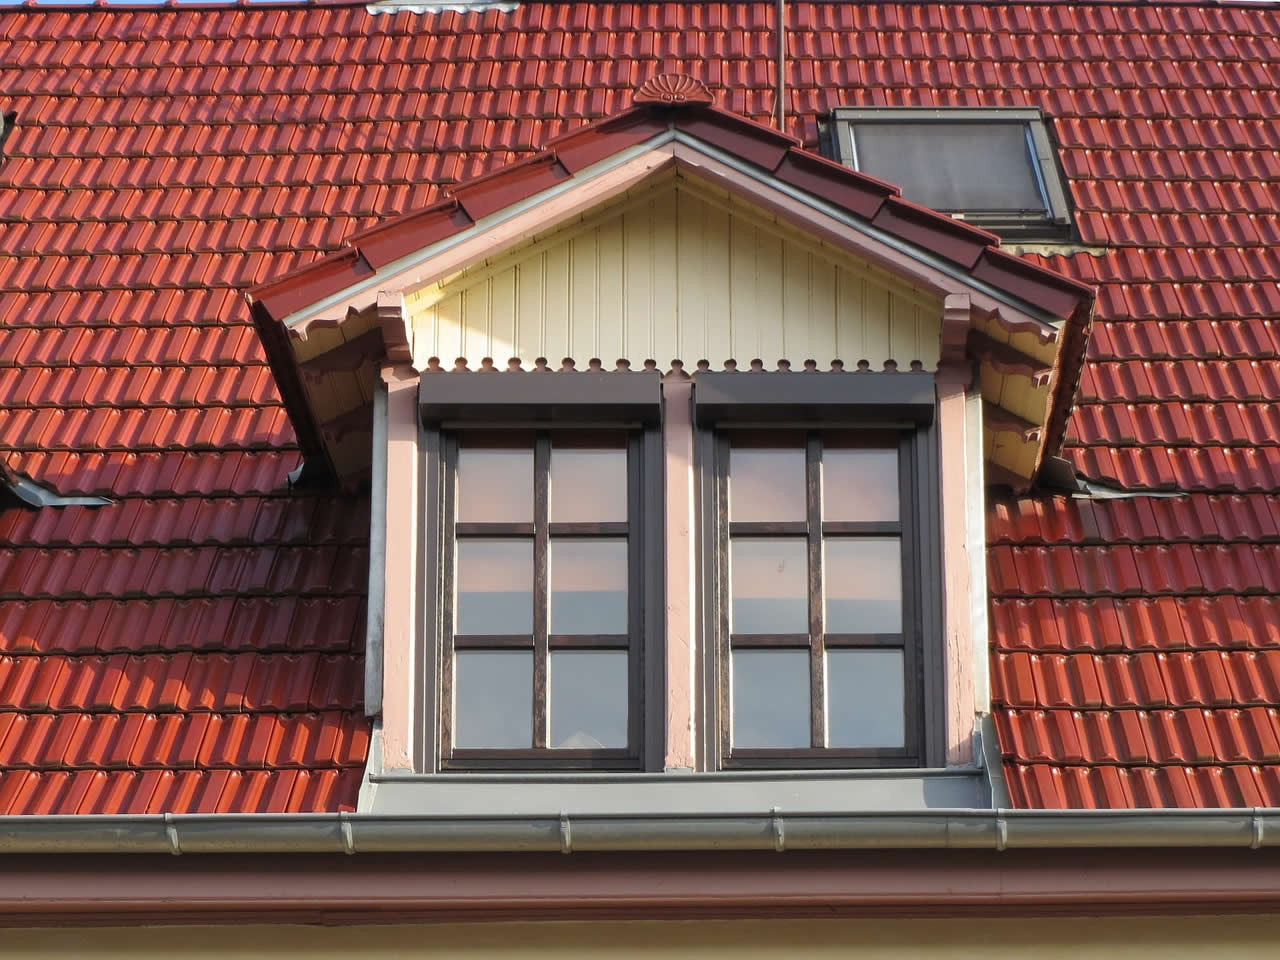 A typical dormer window